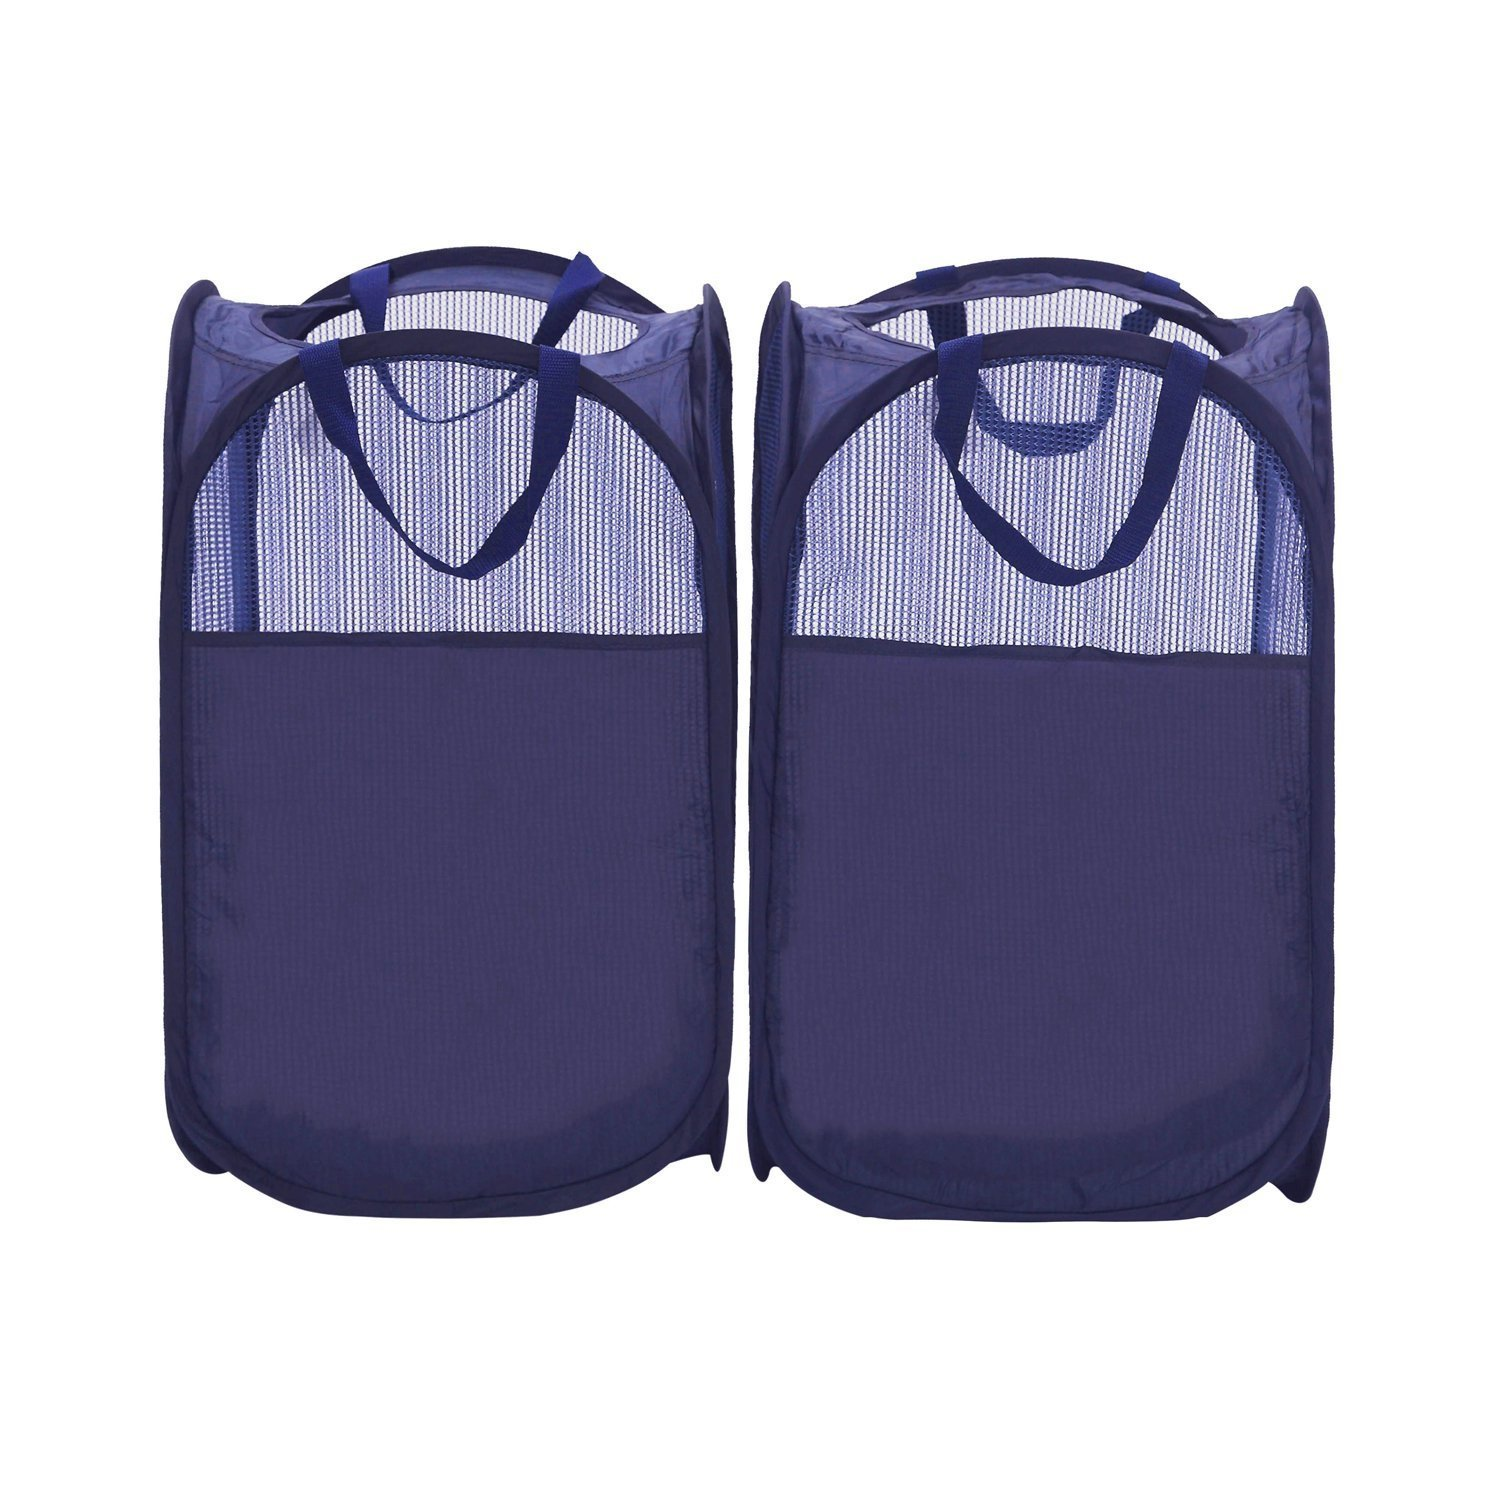 StorageManiac Pop-Up Mesh Hamper, Foldable Laundry Hamper with Reinforced Carry Handles, Pack of 2